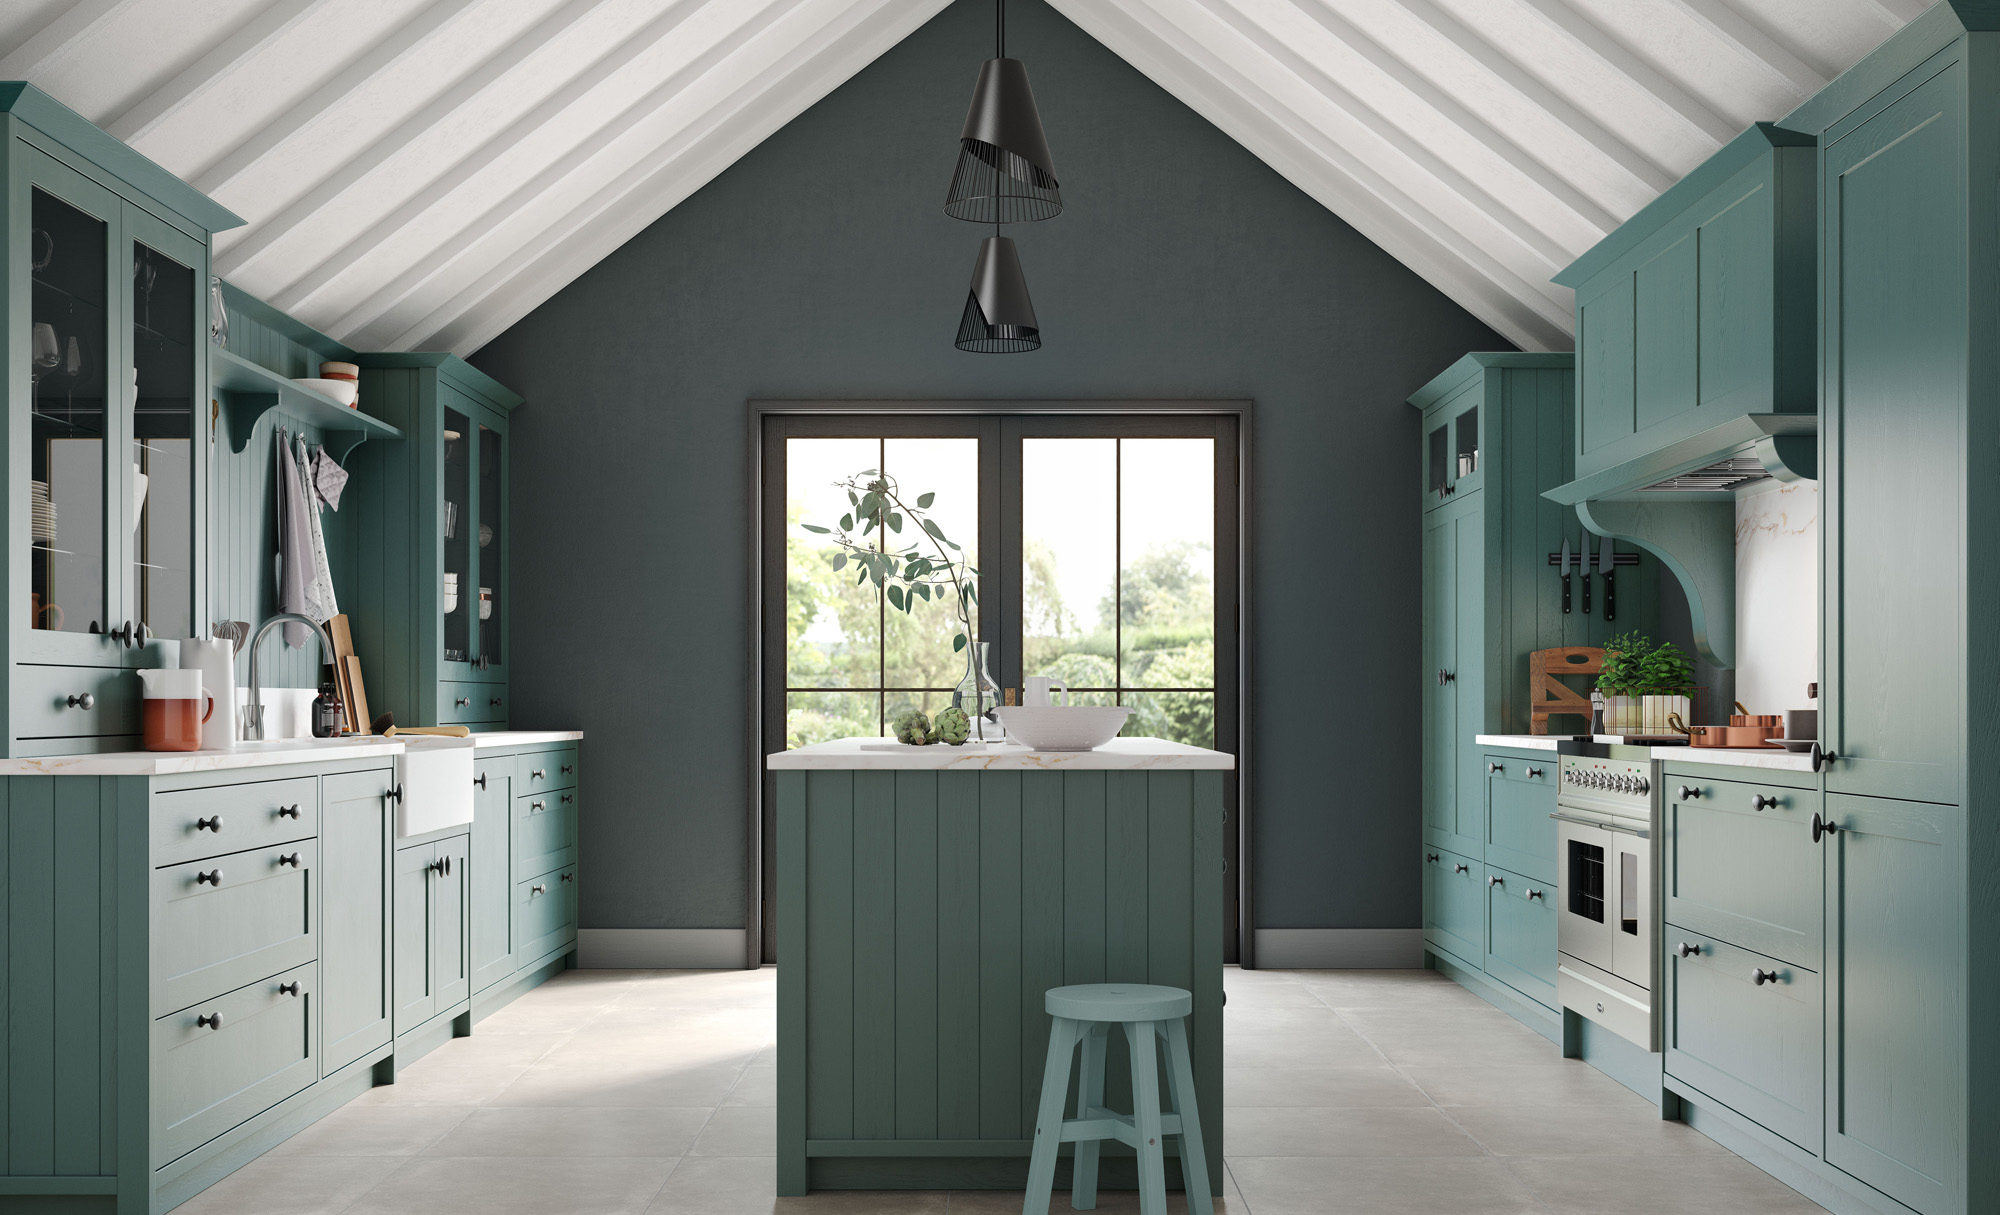 Traditional Classic Country Aldana Shaker Kitchen in Painted Viridian